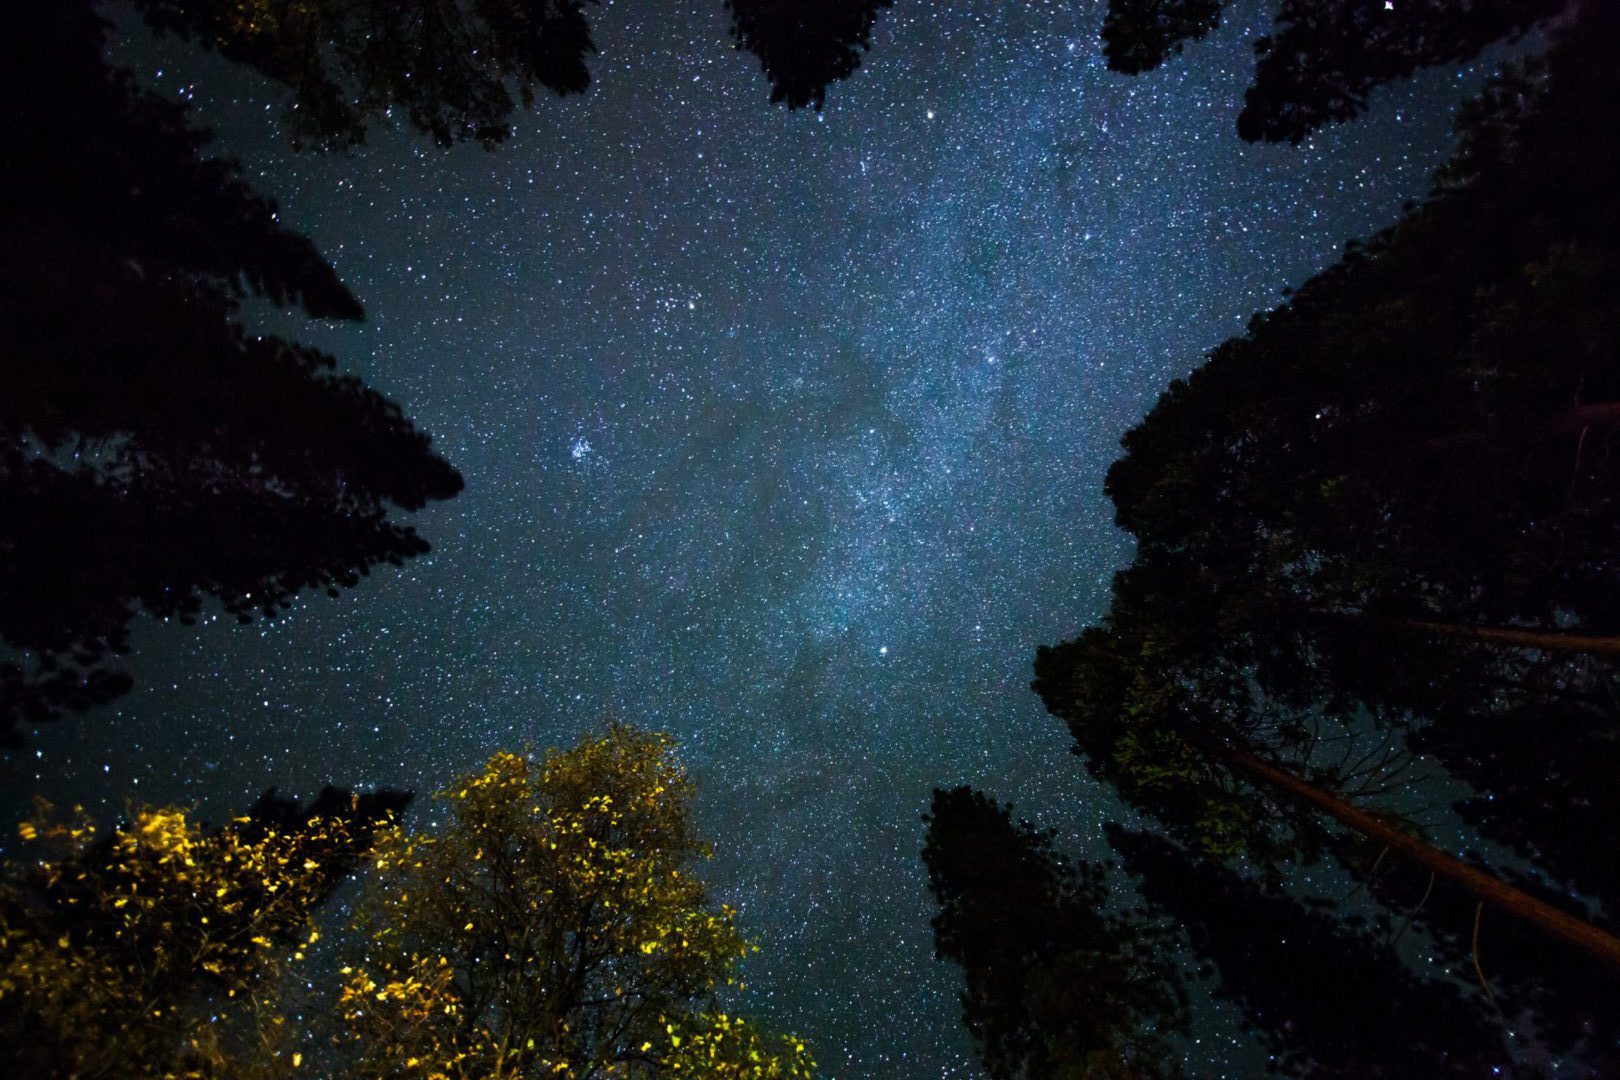 Looking up through the trees at stars